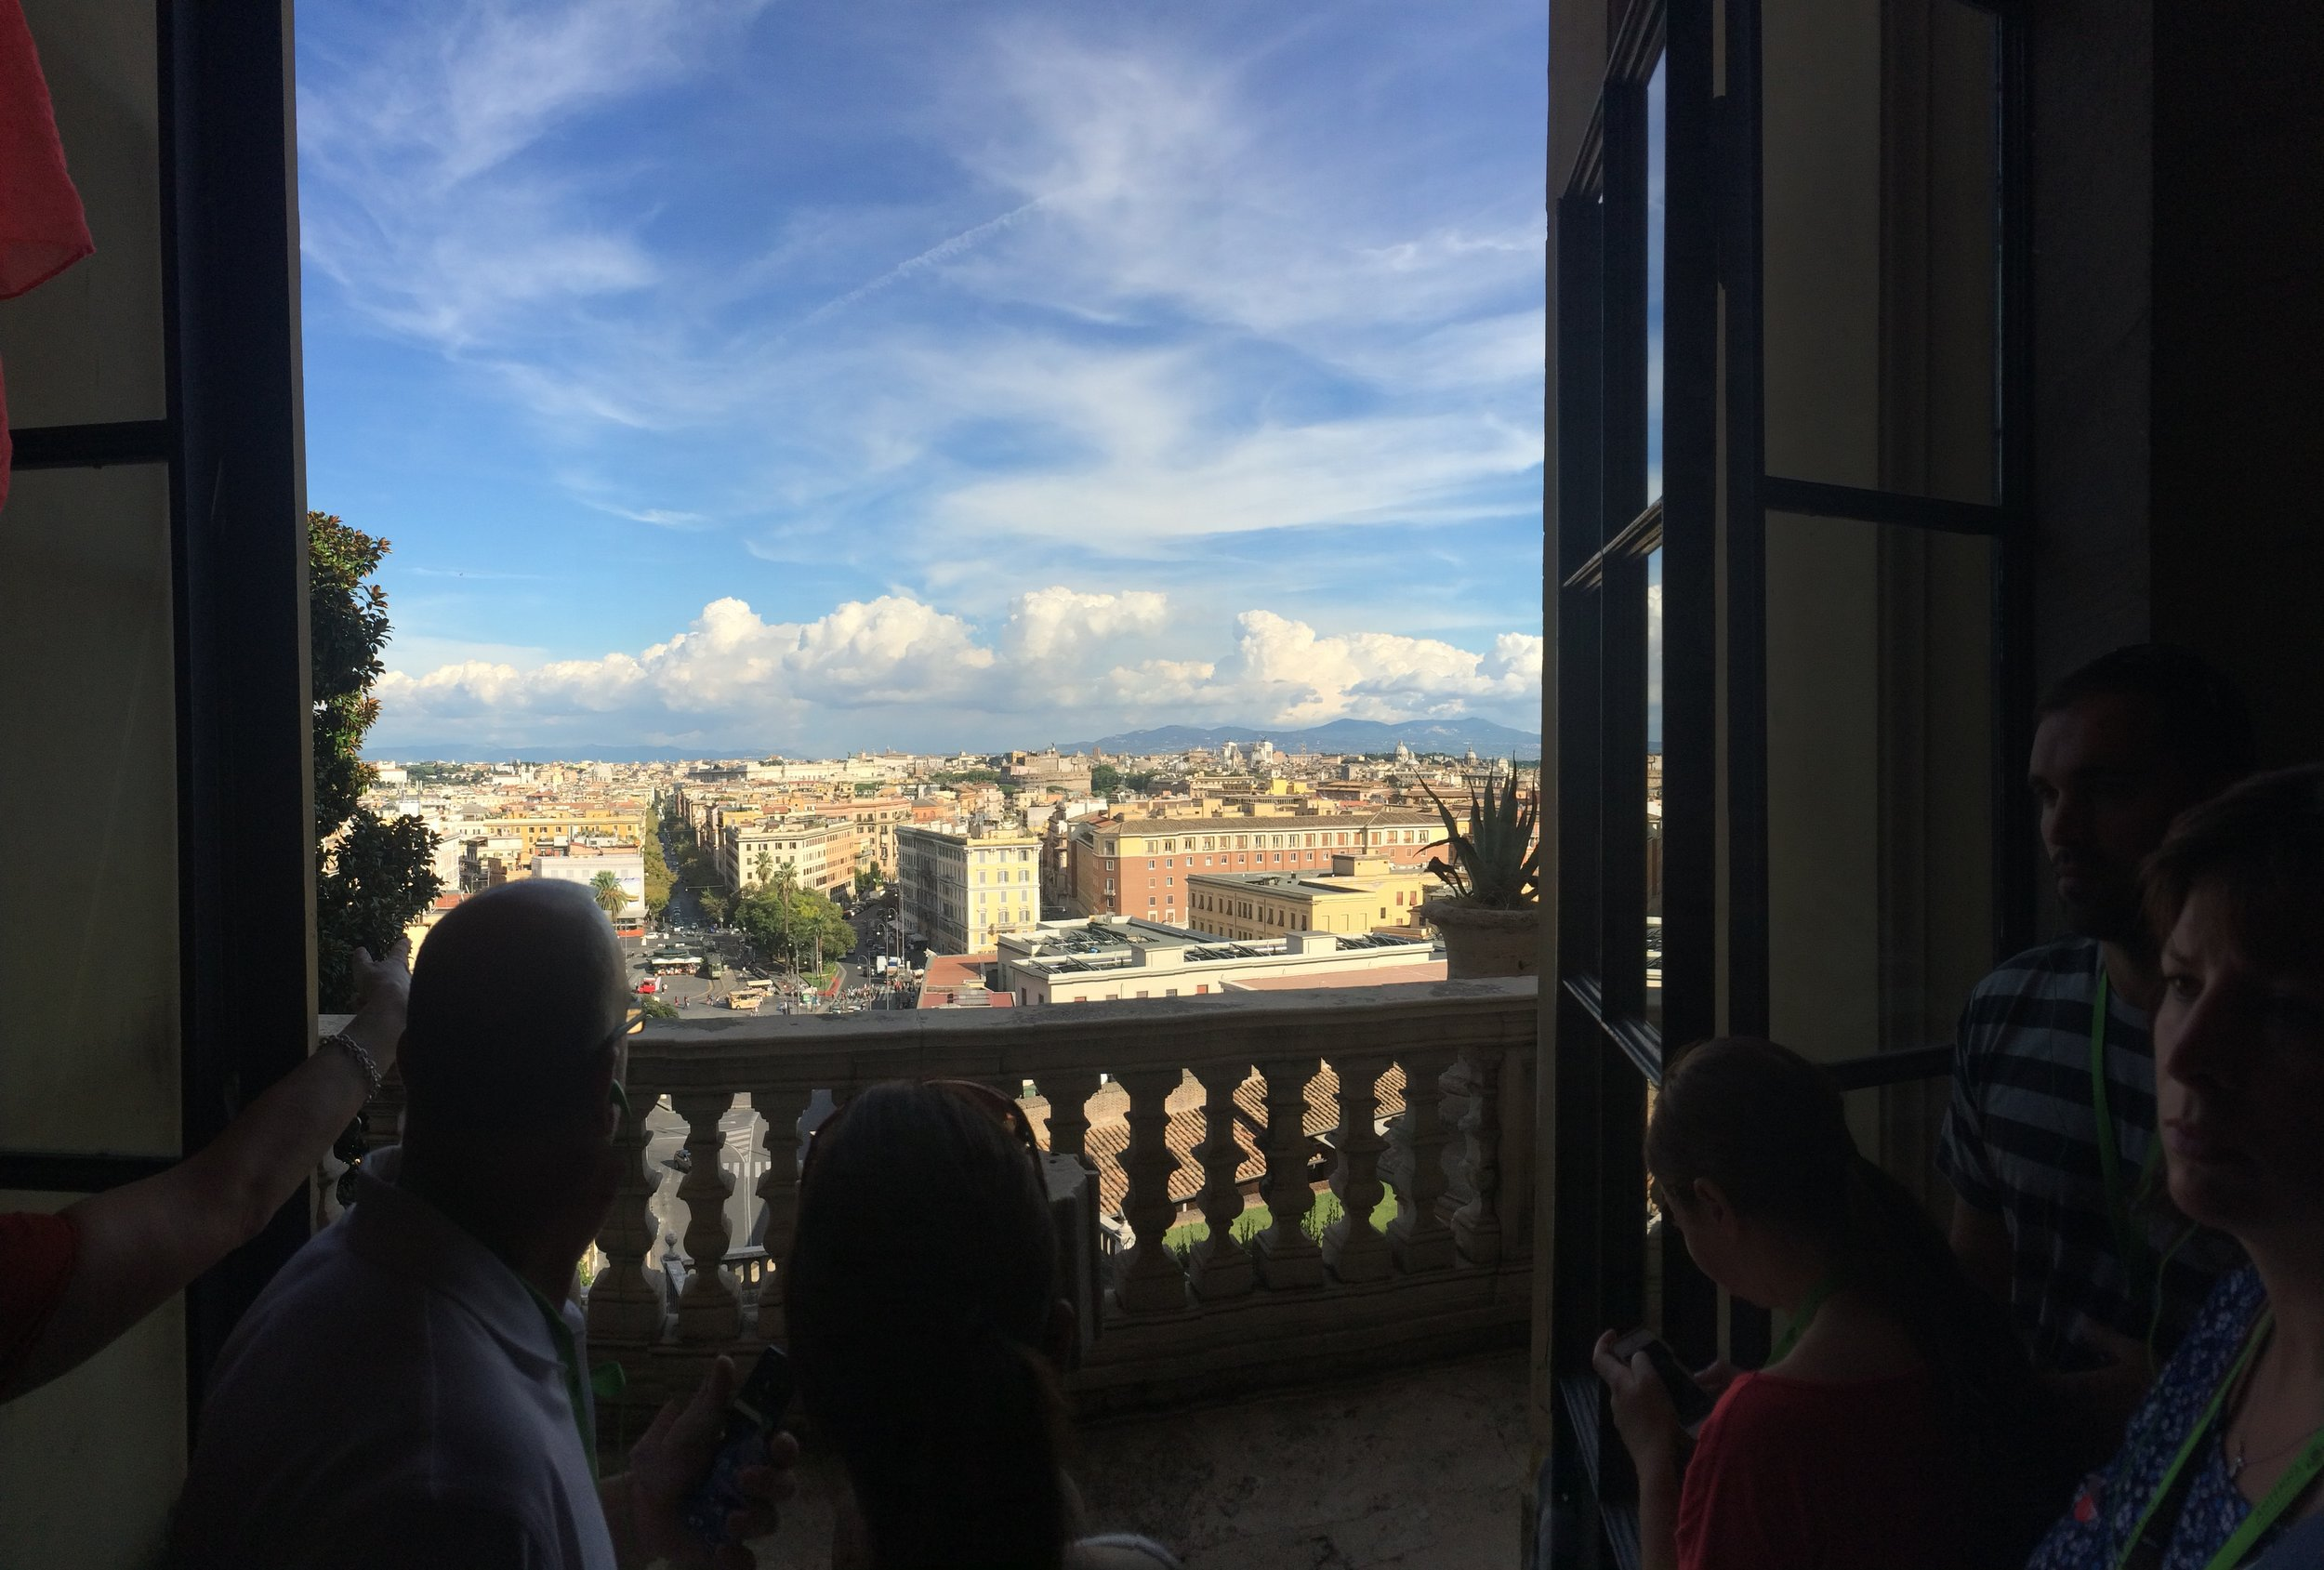 A view of the city of Rome from Vatican City. I think those may be the seven legendary hills in the distance.